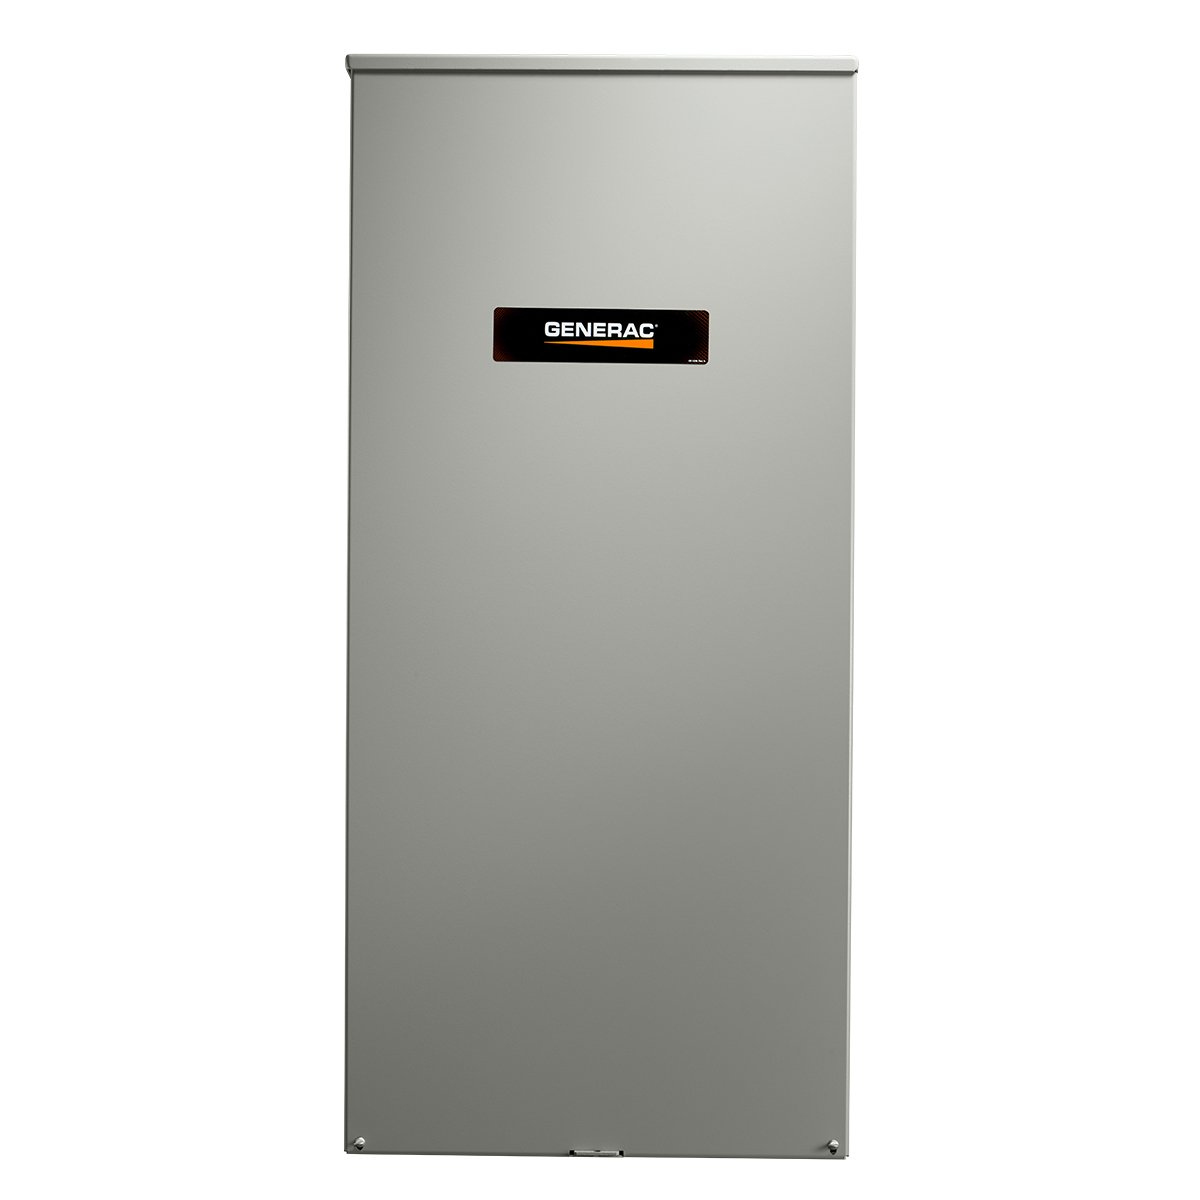 Generac RXSW200A3 200 AMP Smart Transfer Switch by Generac